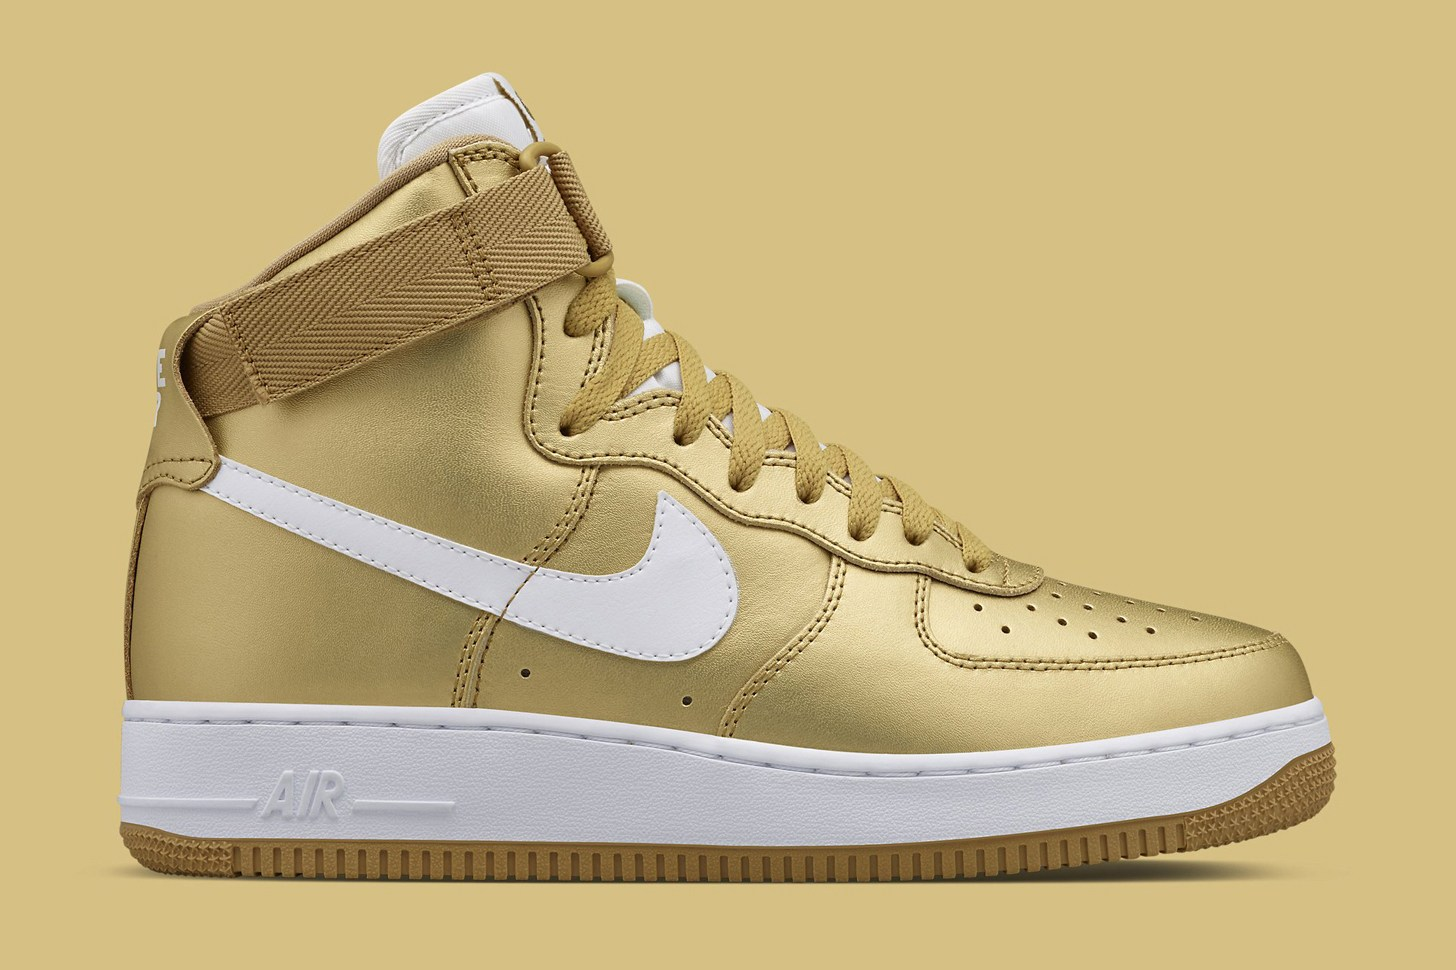 nike-air-force-1-high-metallic-gold-1